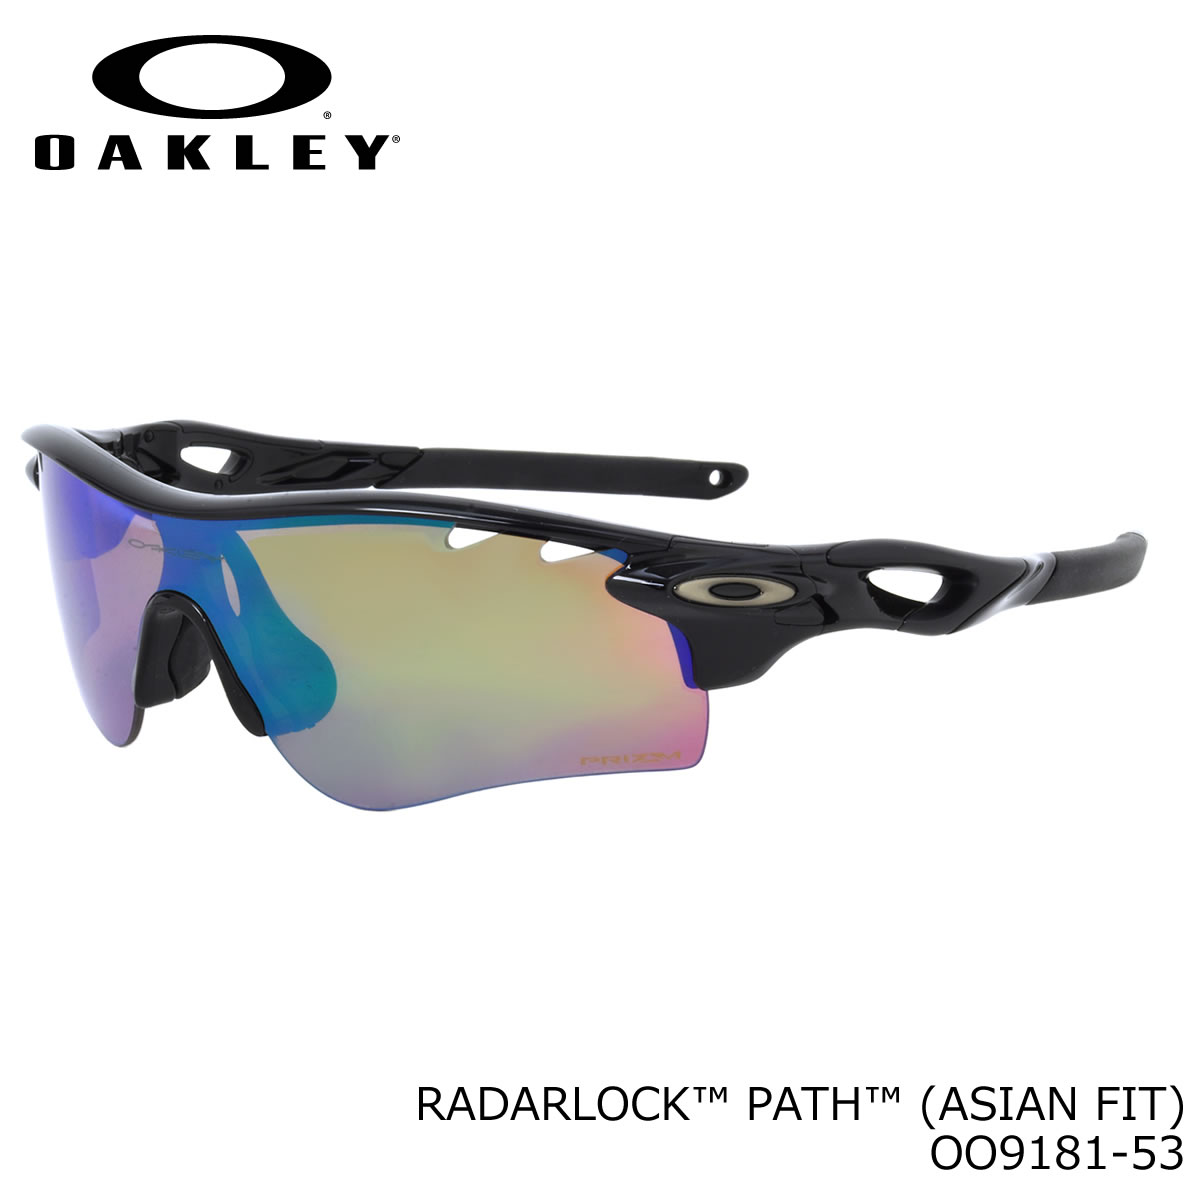 5965239ee35 (Oakley) sunglasses OO9181-53 RADARLOCK PATH Polished Black Prizm Shallow  H2O Polarized Prizm Deep H2O Polarized radar lock pass polarized lens Super  lens ...